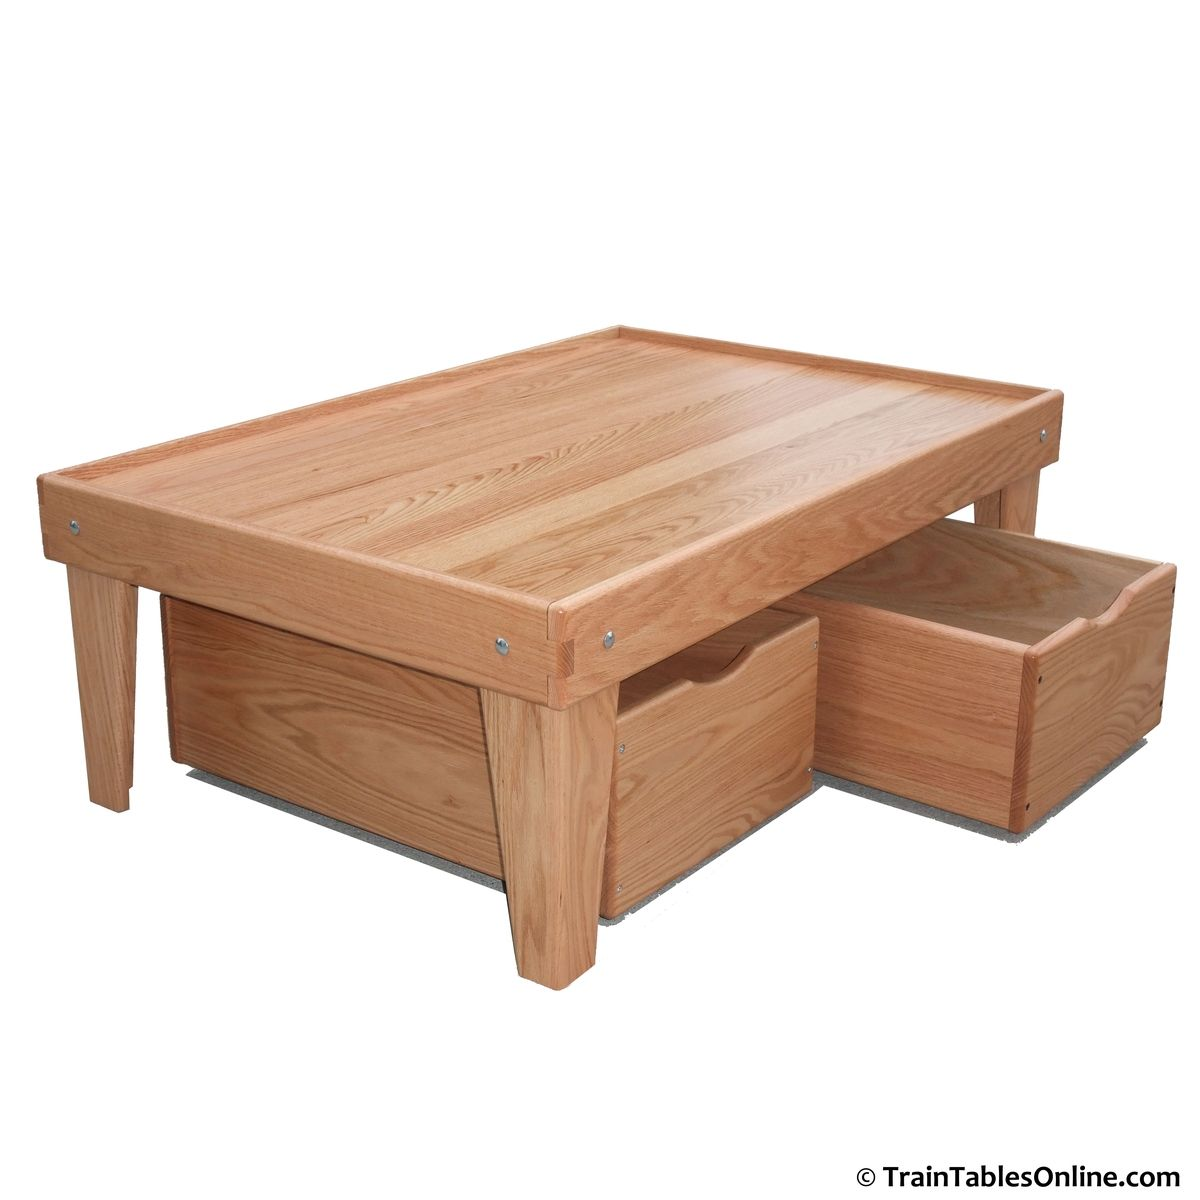 Hand Made Red Oak Train Table And Storage Bin Package By Train Tables Online